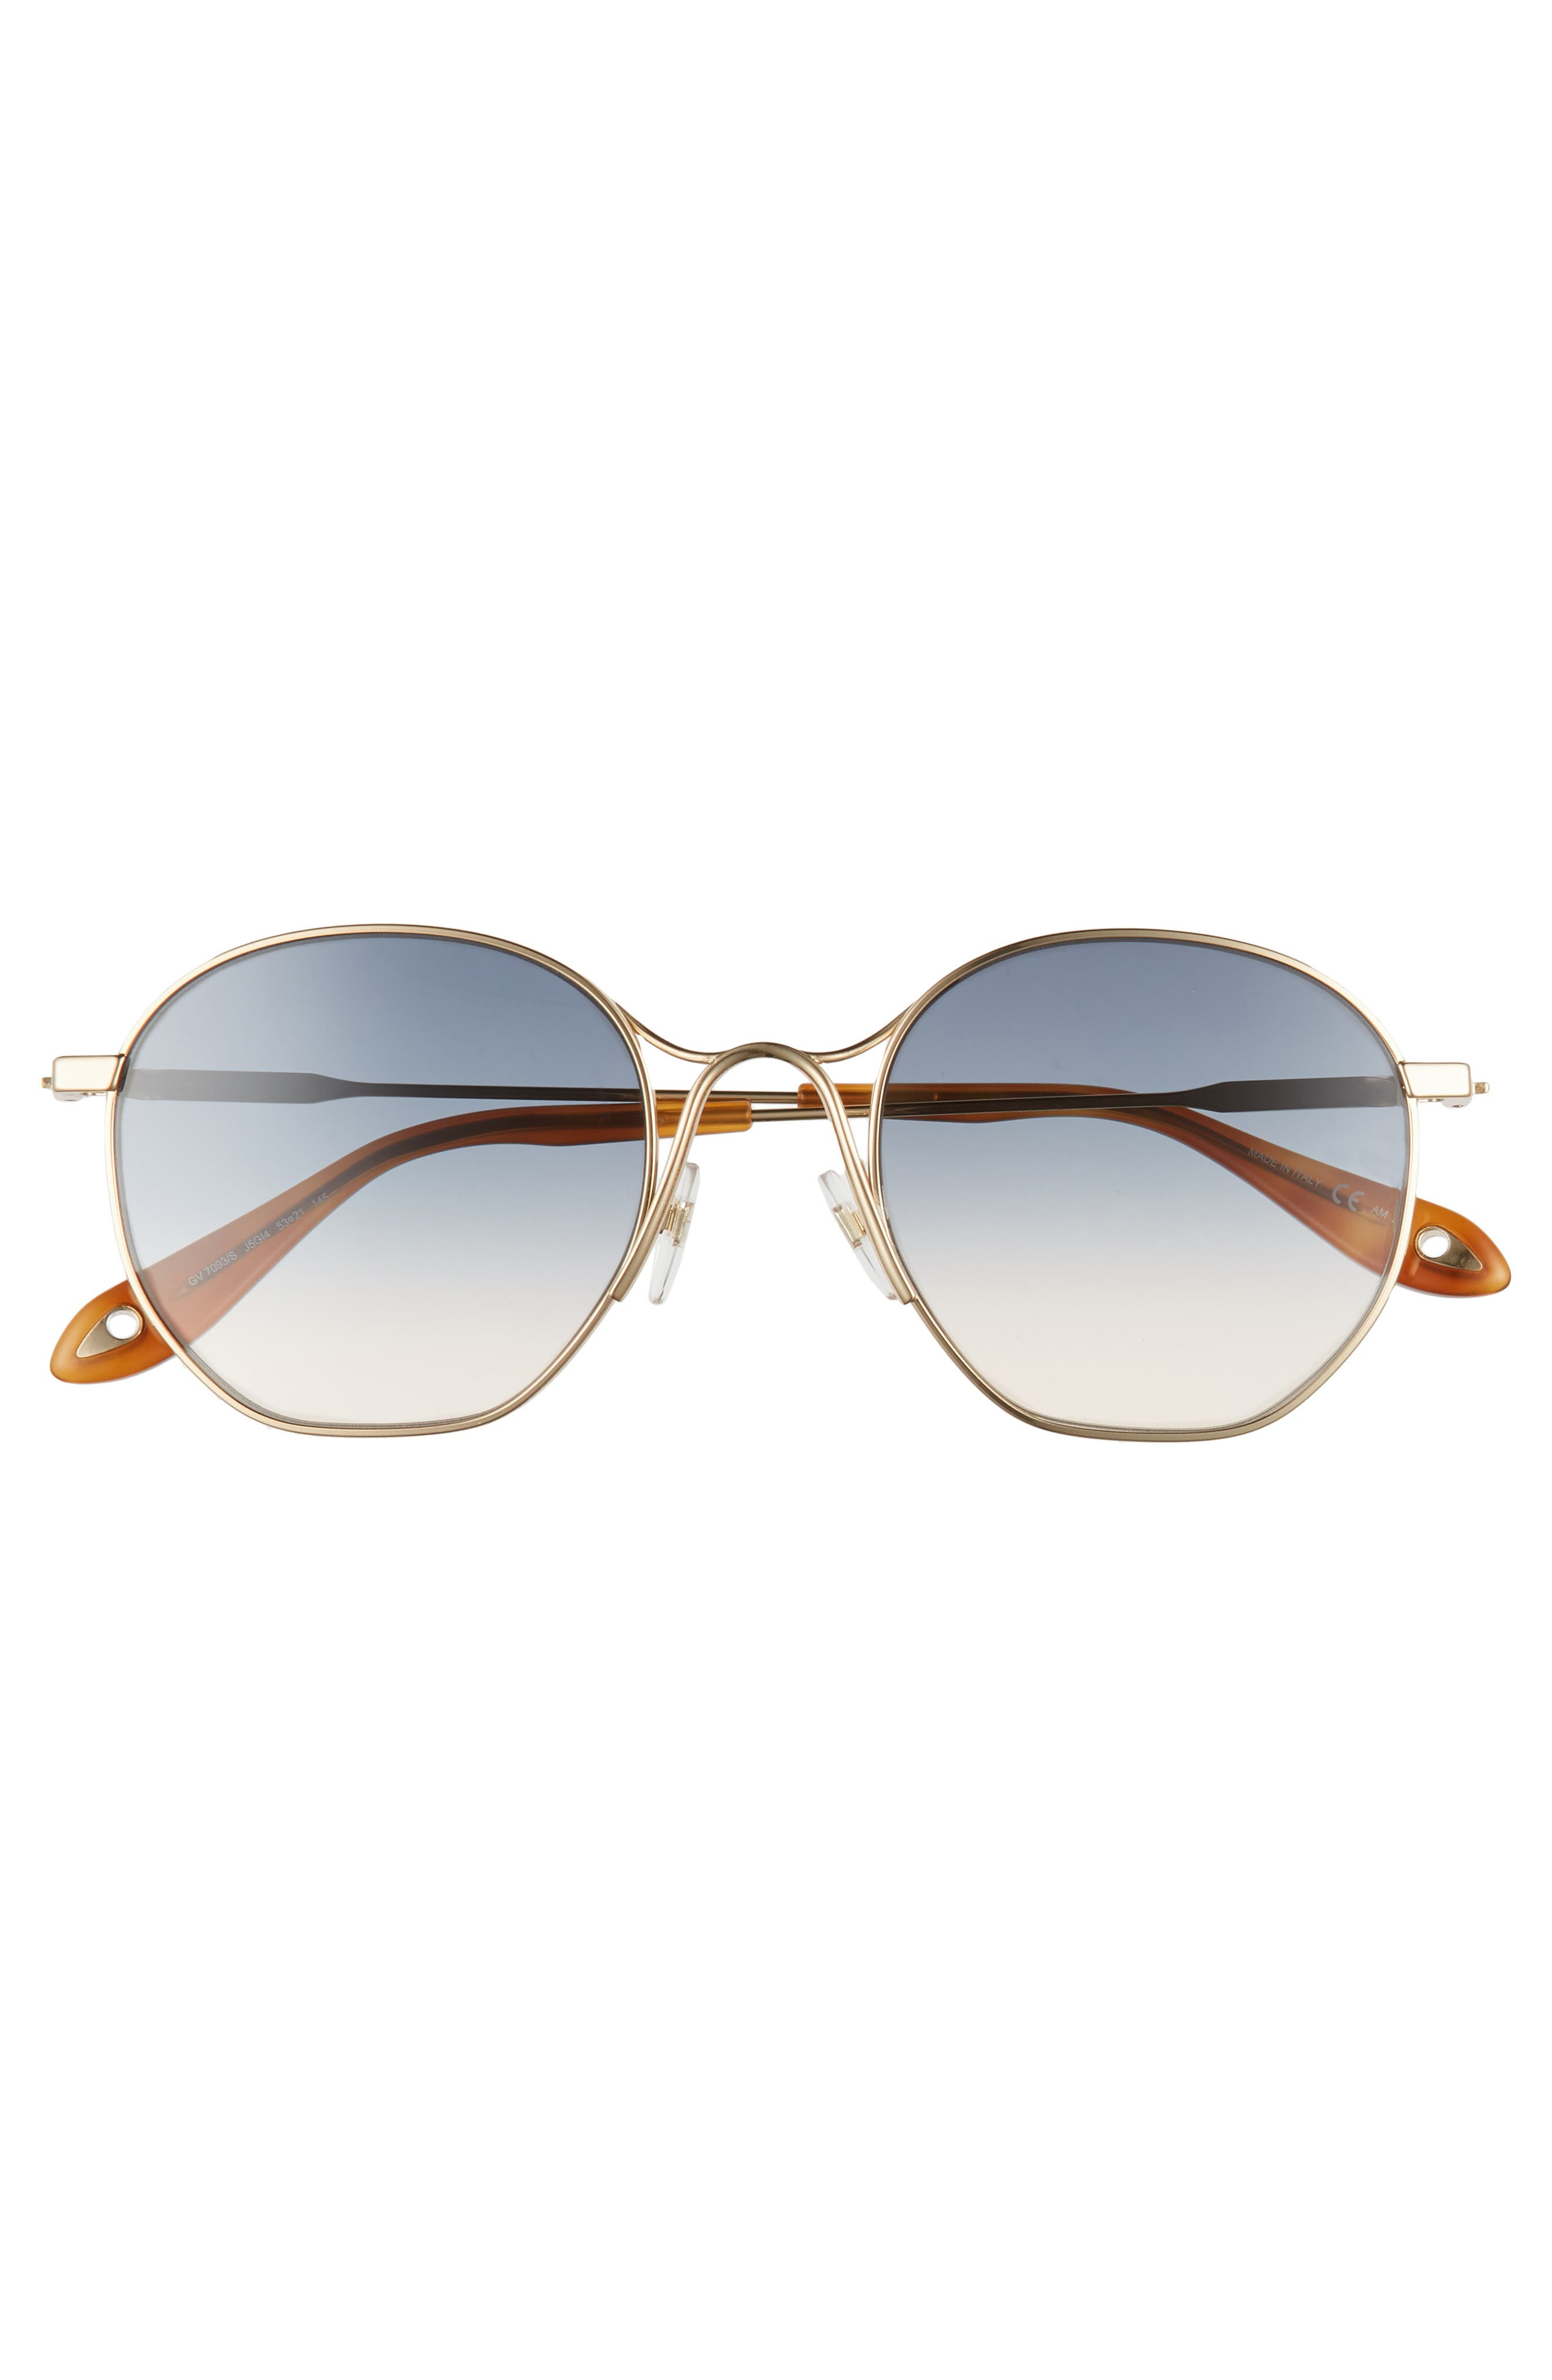 53mm Squared Round Metal Sunglasses,                             Alternate thumbnail 3, color,                             GOLD